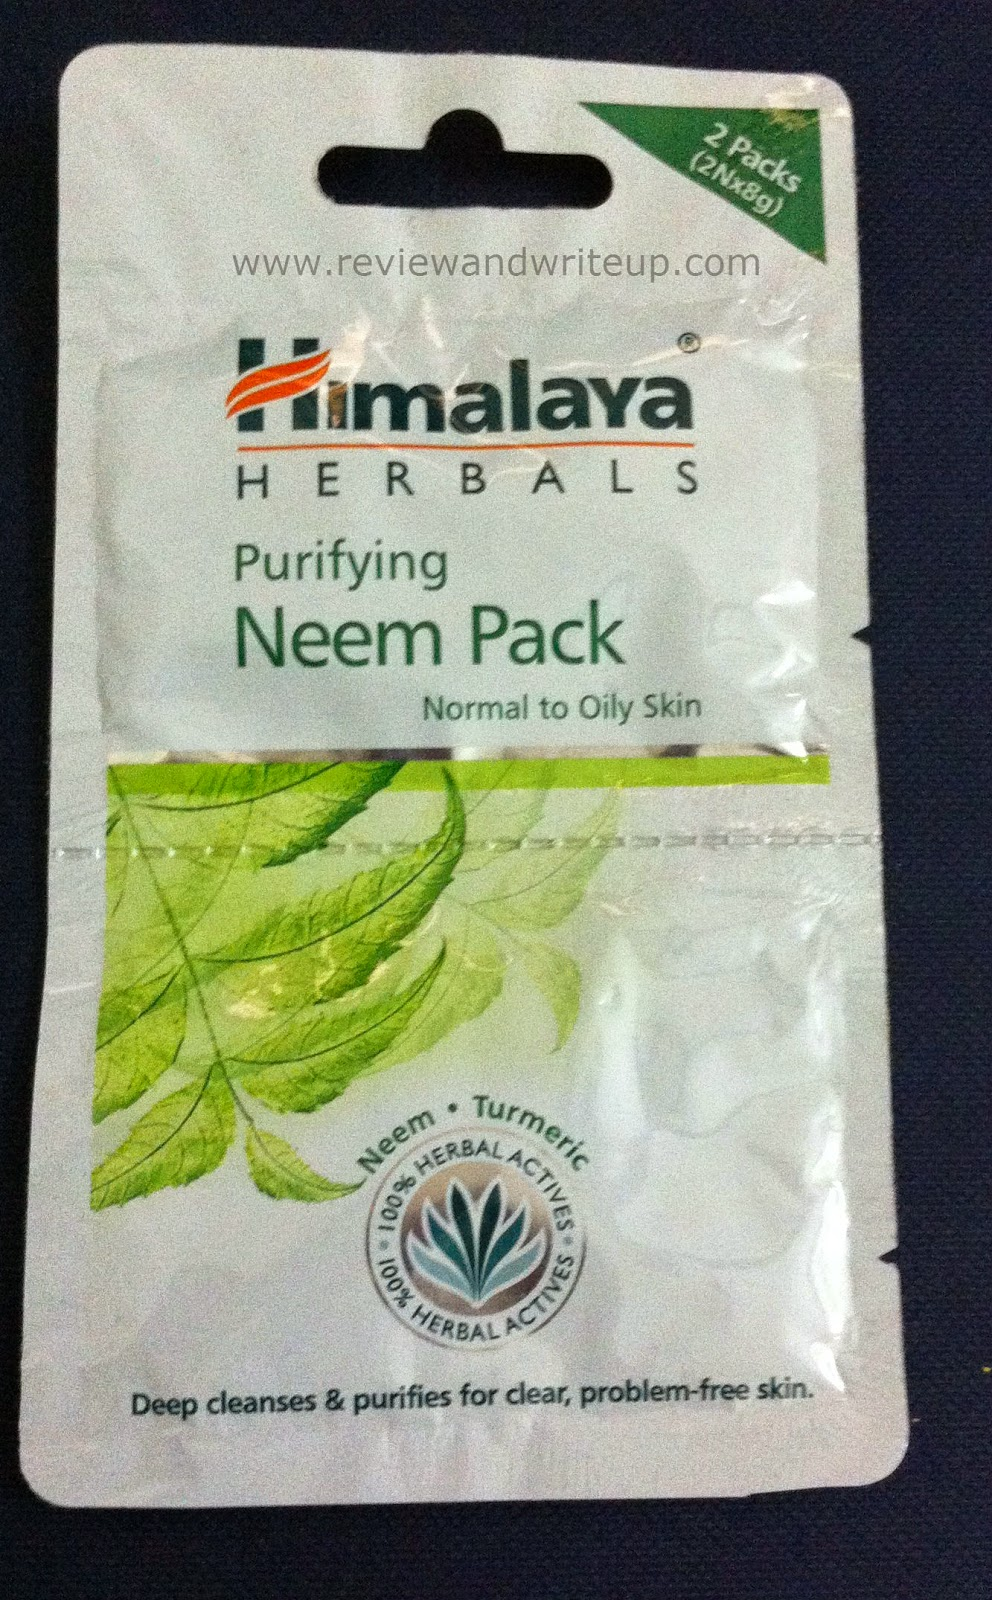 neem leaf essay ingredients key ingredients are fuller s earth multani mitti neem turmeric formation department home